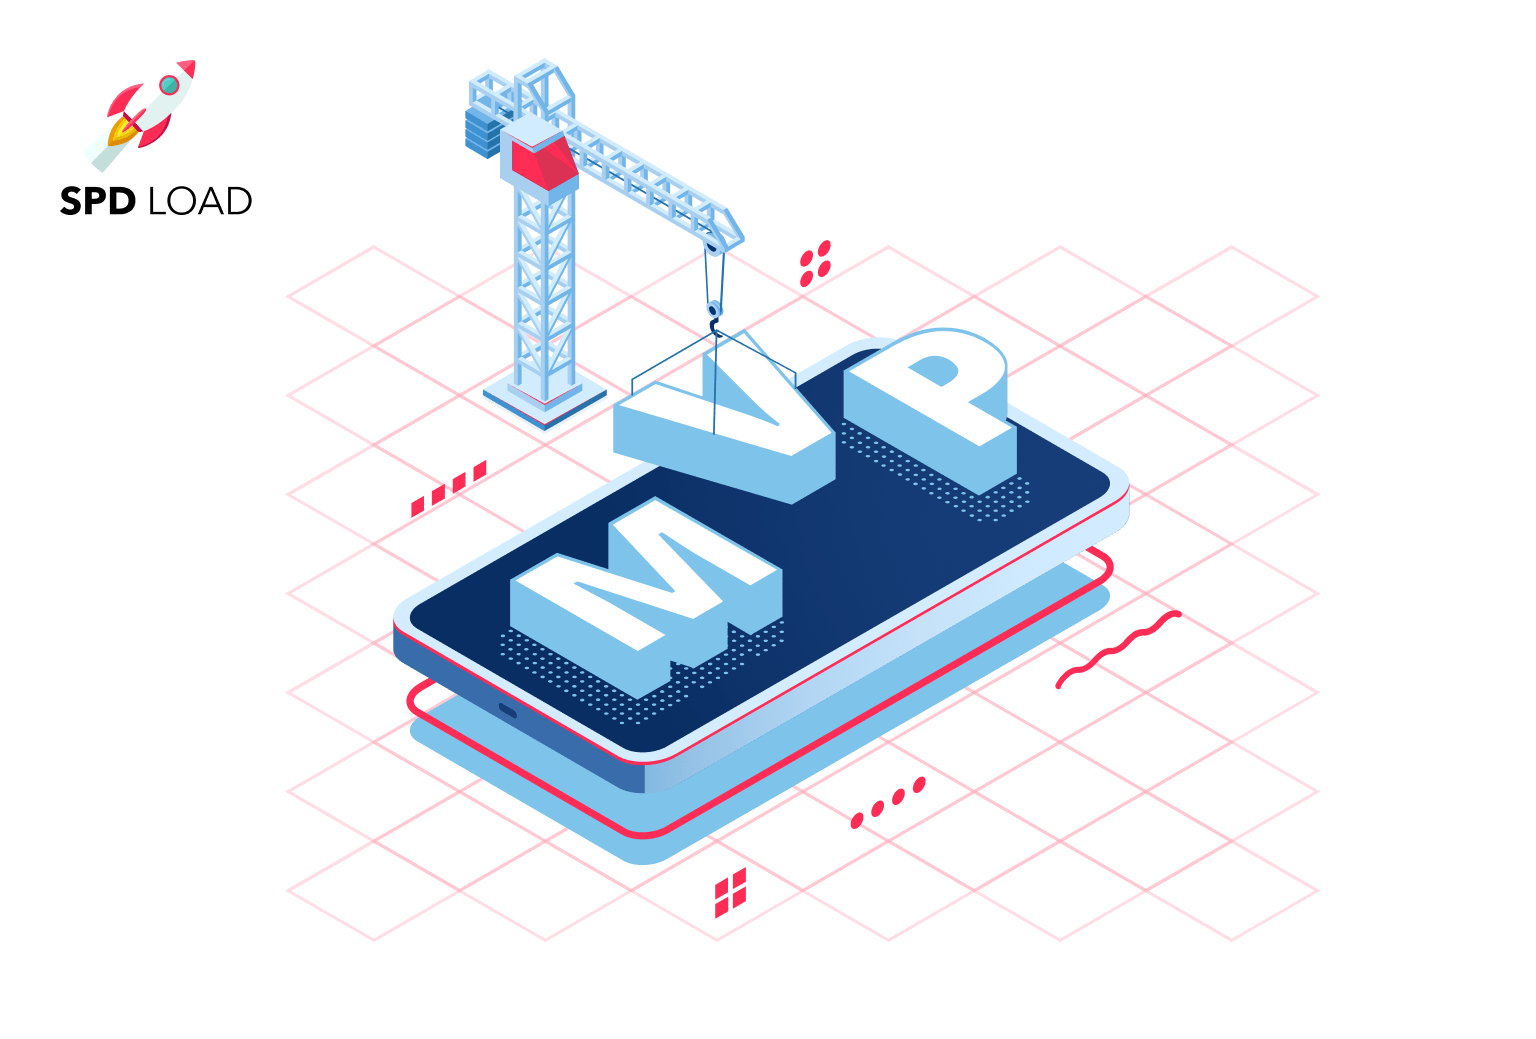 SpdLoad team prepared an in-depth guide on how tos and the cost of an MVP application design